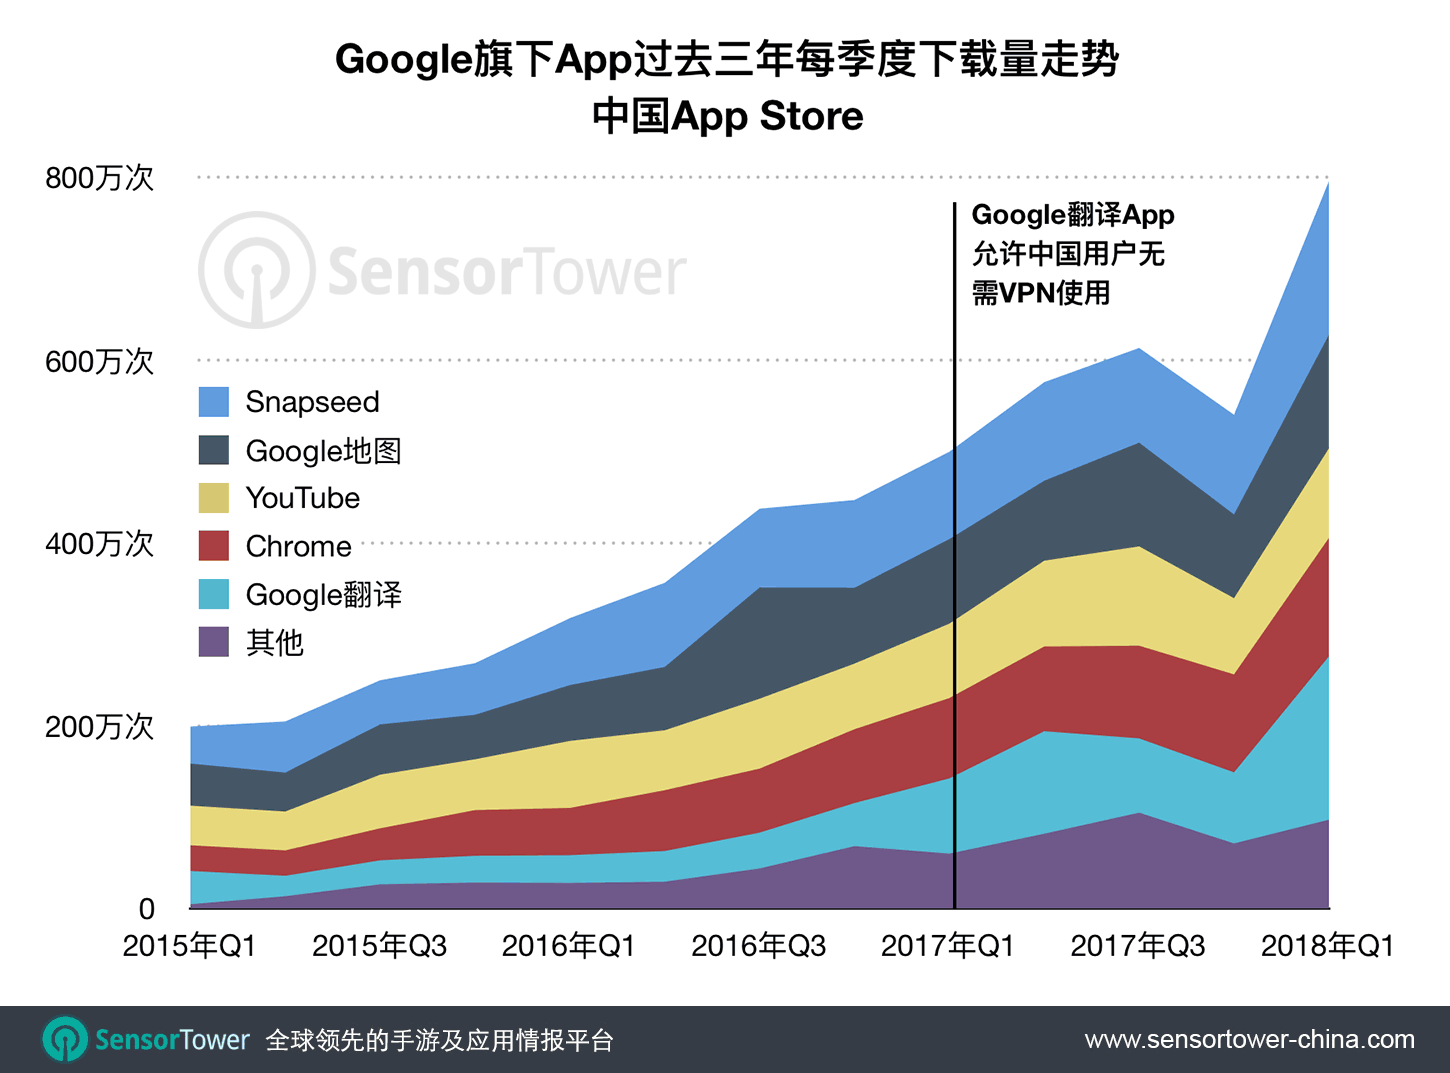 Google Apps Quarterly iOS Download in China  - google apps quarterly ios downloads in cn - 谷歌旗下App在中国市场达最高峰季度:2018年Q1下载量近800万次,Google翻译及Snapseed主要推进